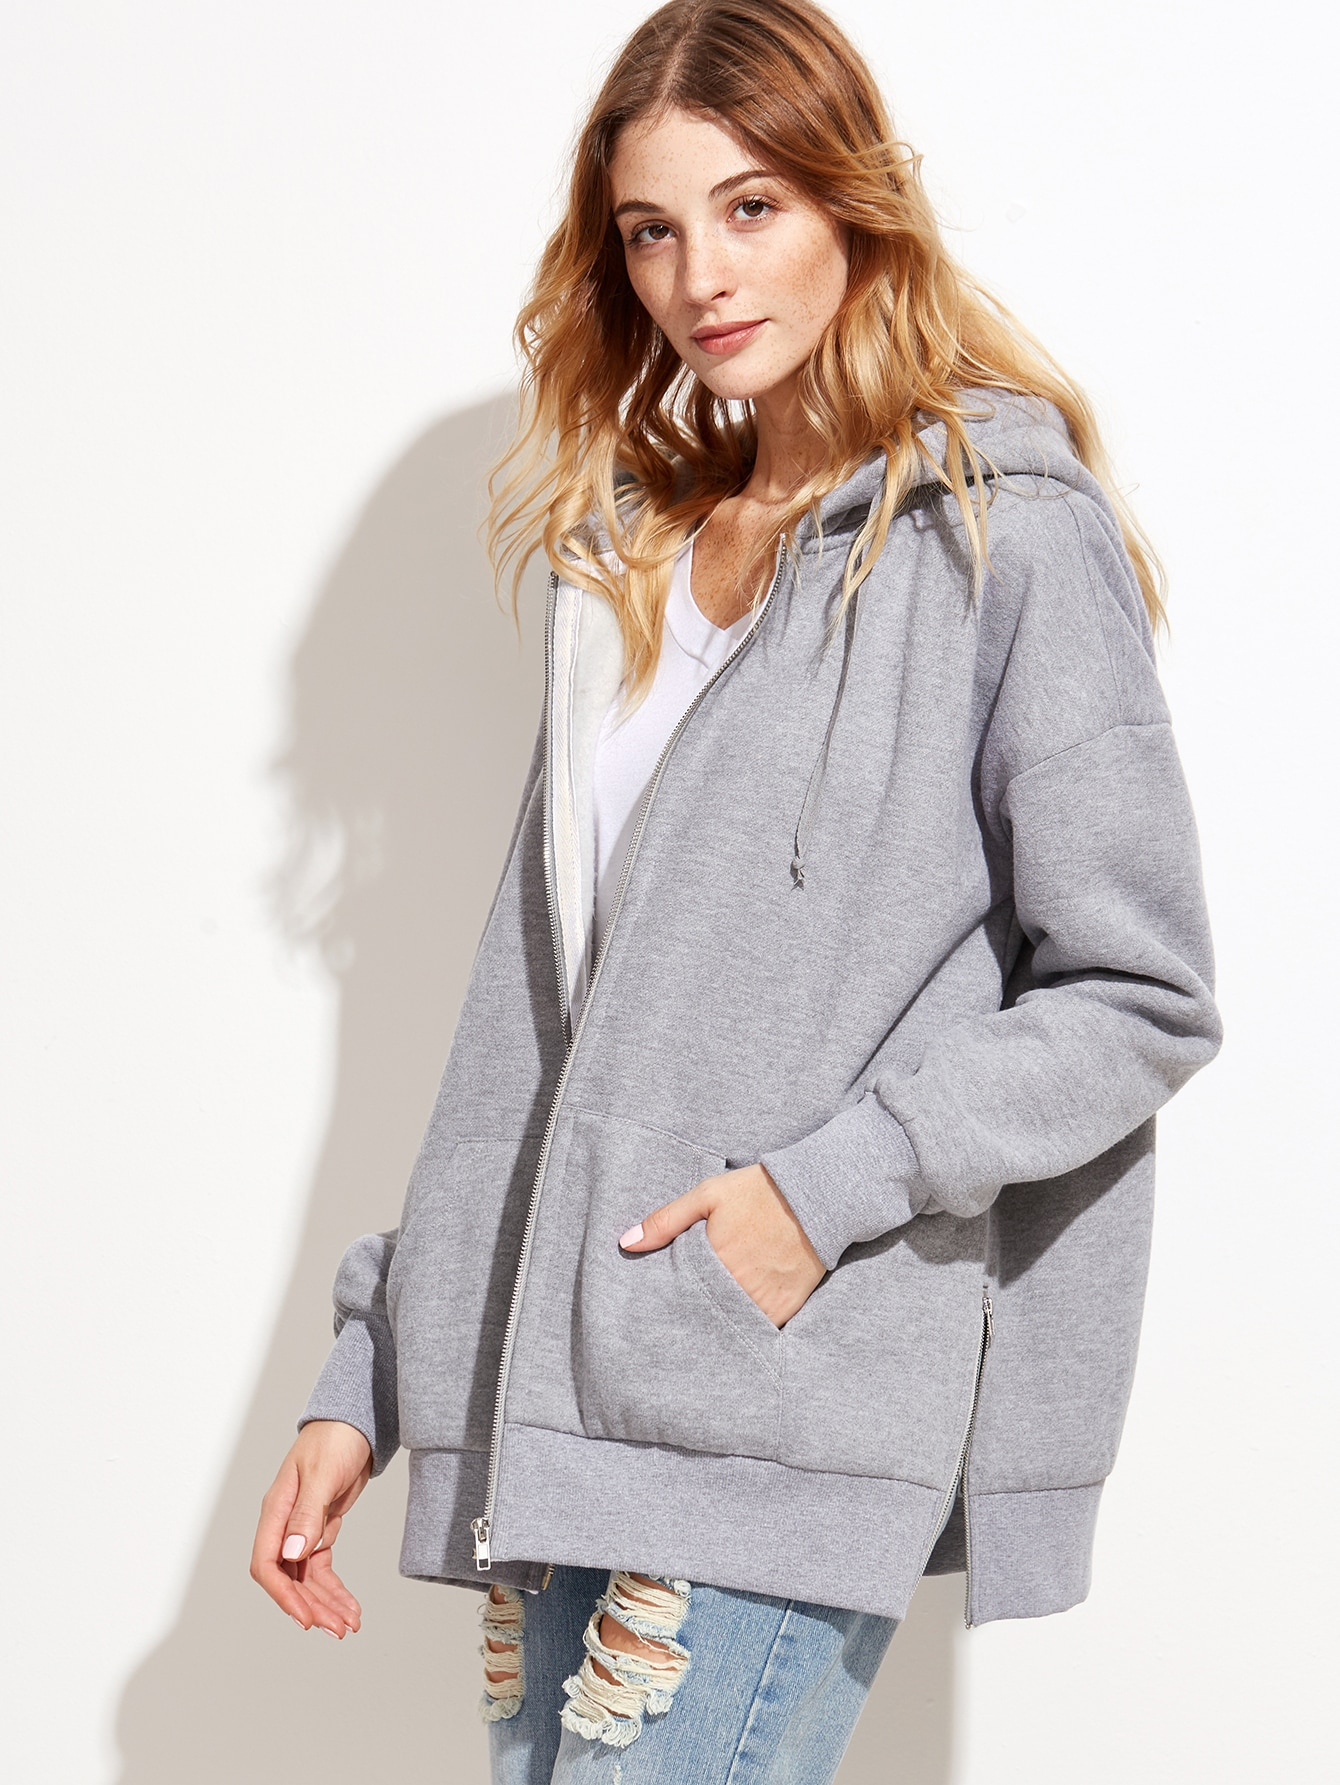 Grey Slit Side Zipper Front Hooded SweatshirtGrey Slit Side Zipper Front Hooded Sweatshirt<br><br>color: Grey<br>size: XS